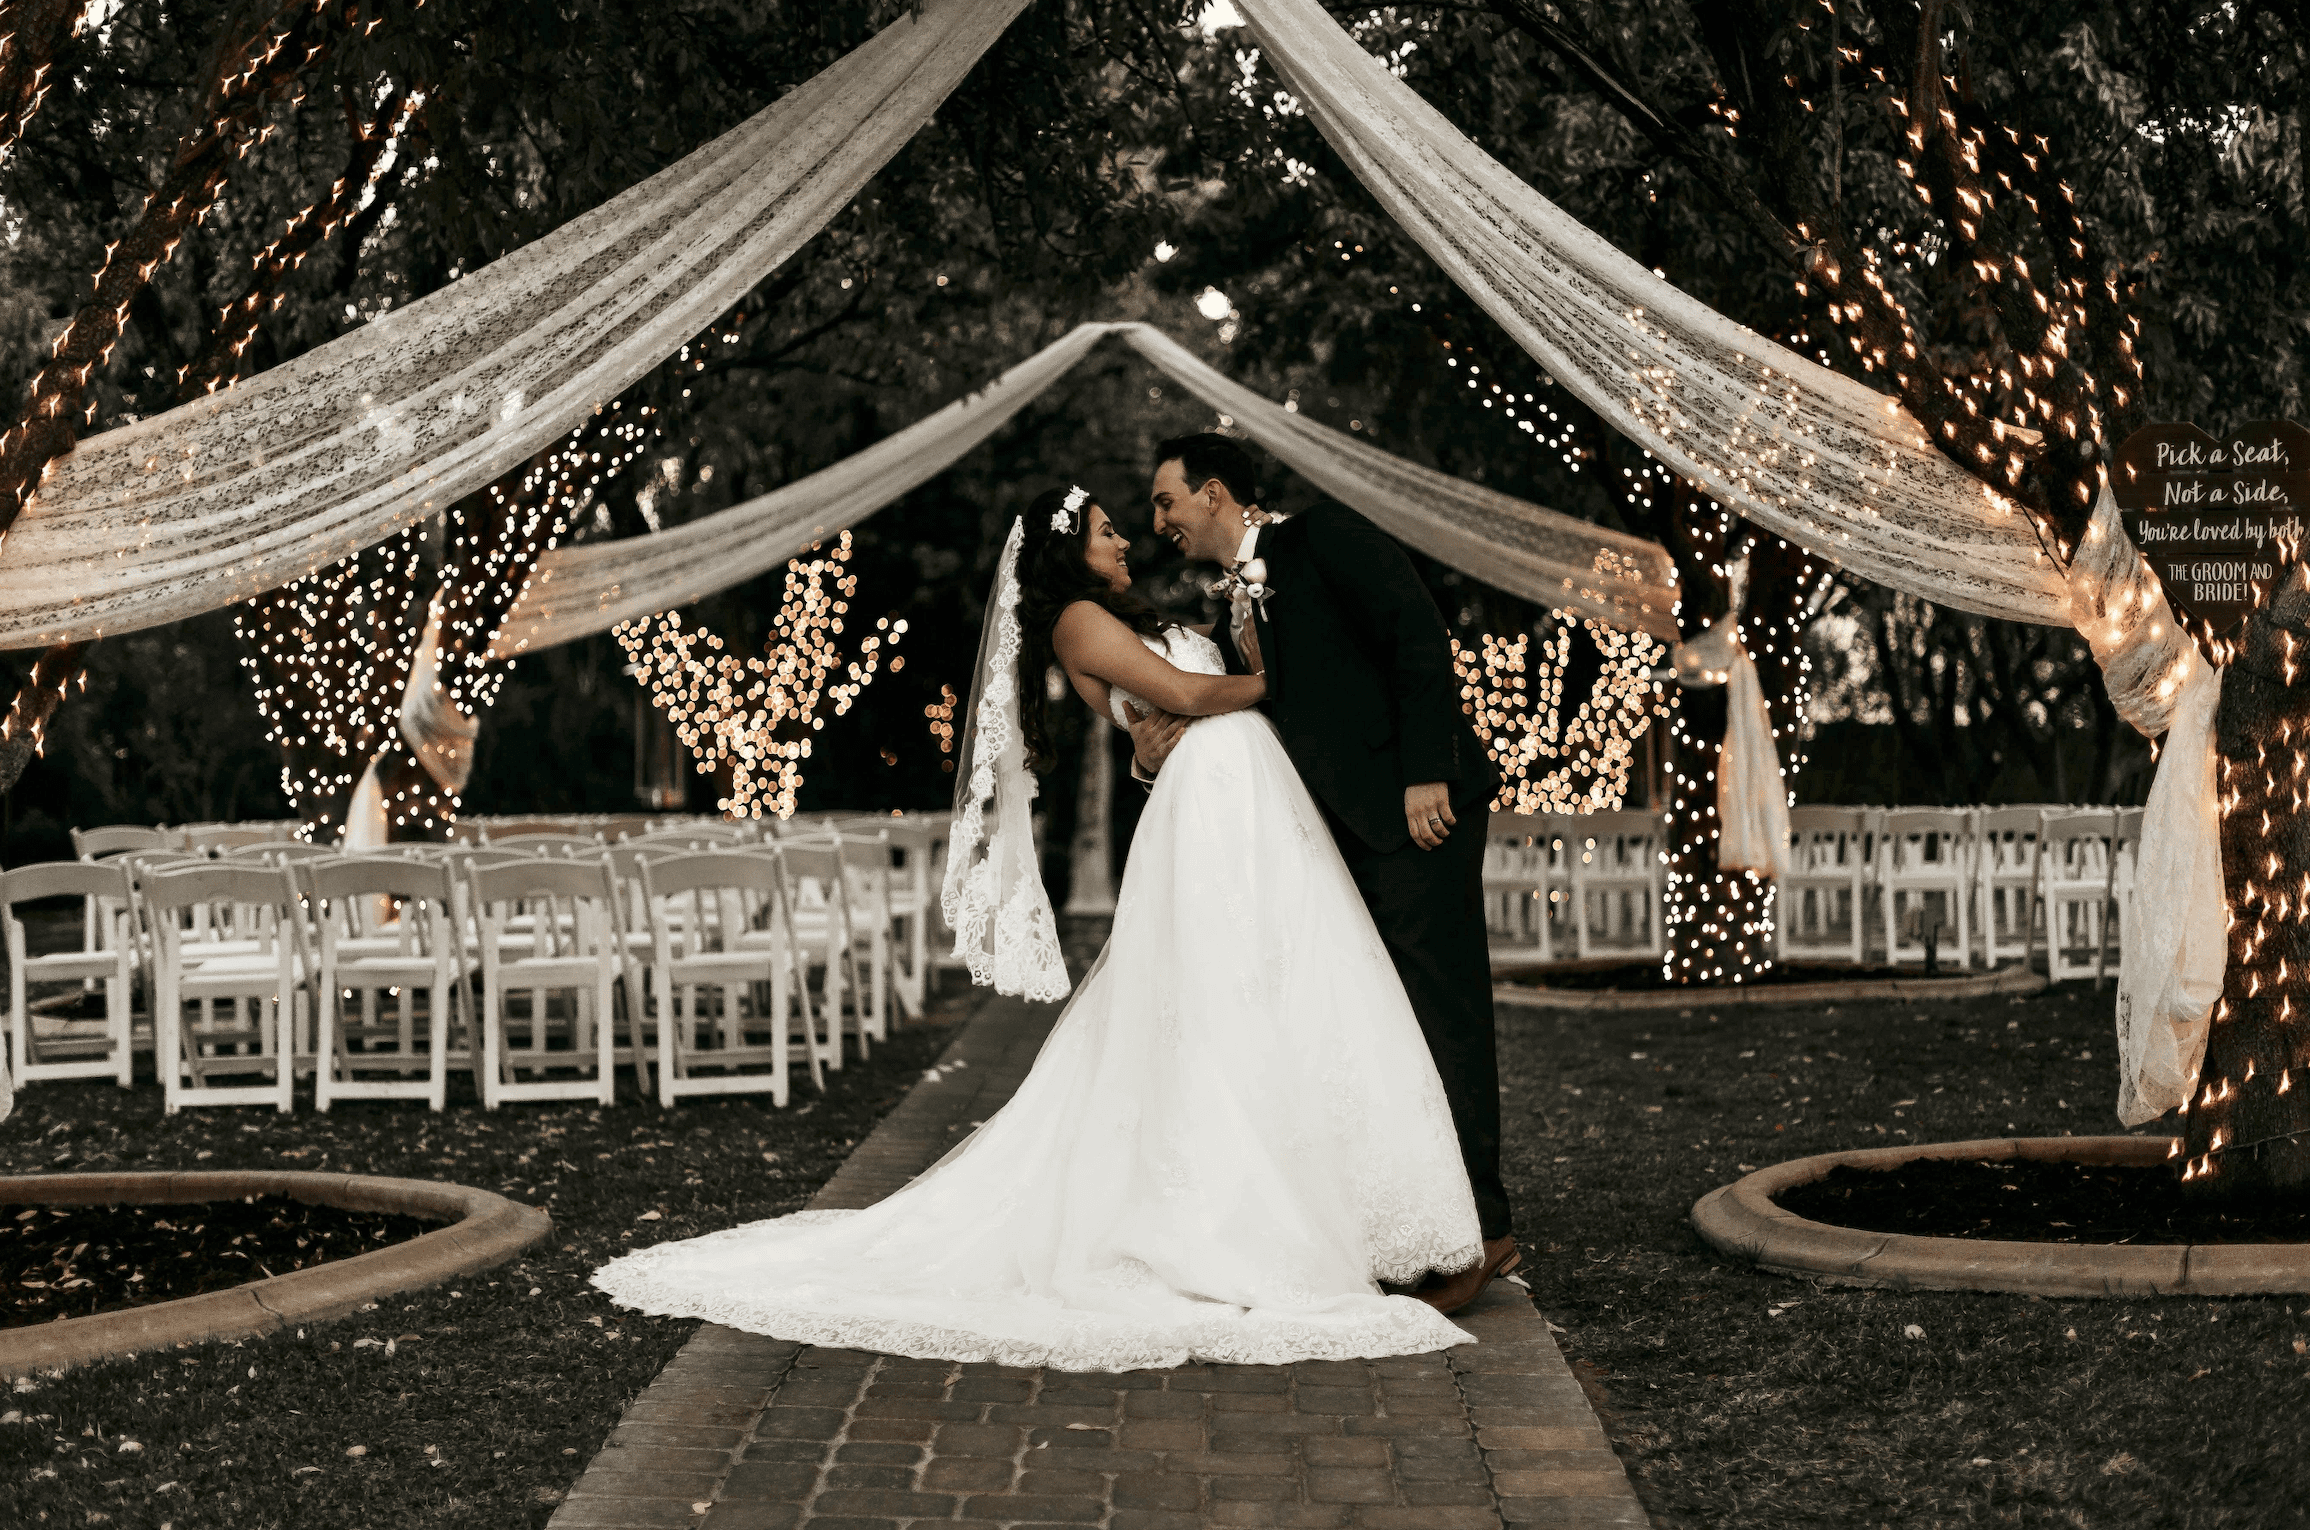 Wedding lighting is much more than just a stylistic element